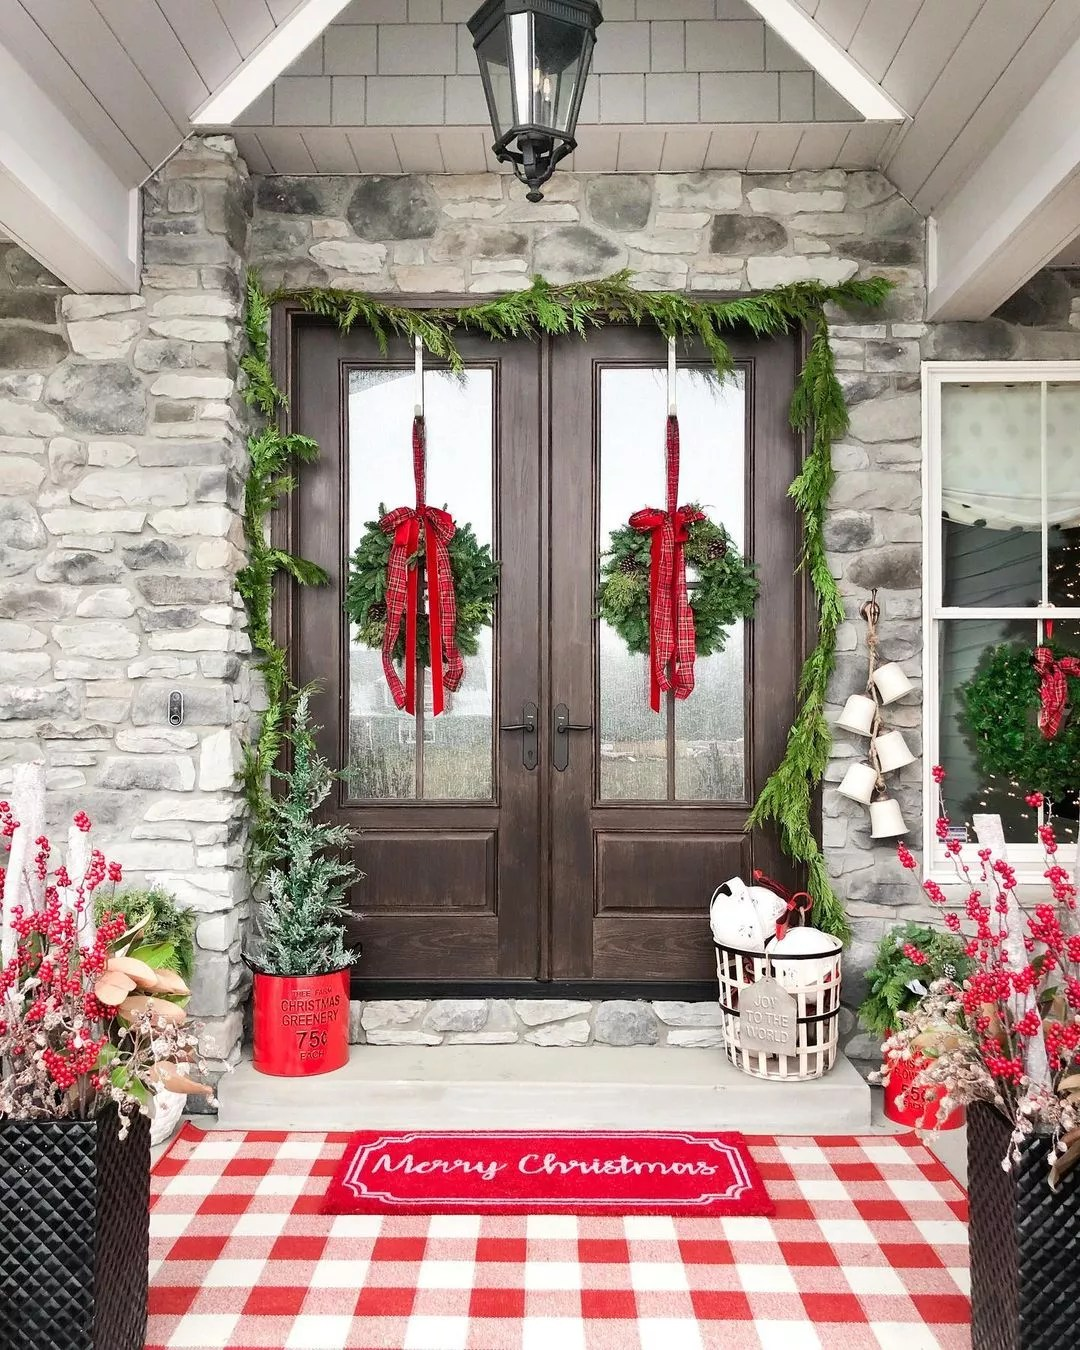 Double front doors lined with garland and two wreathes hanging on the door windows. Photo by Instagram user @beyond_gray.